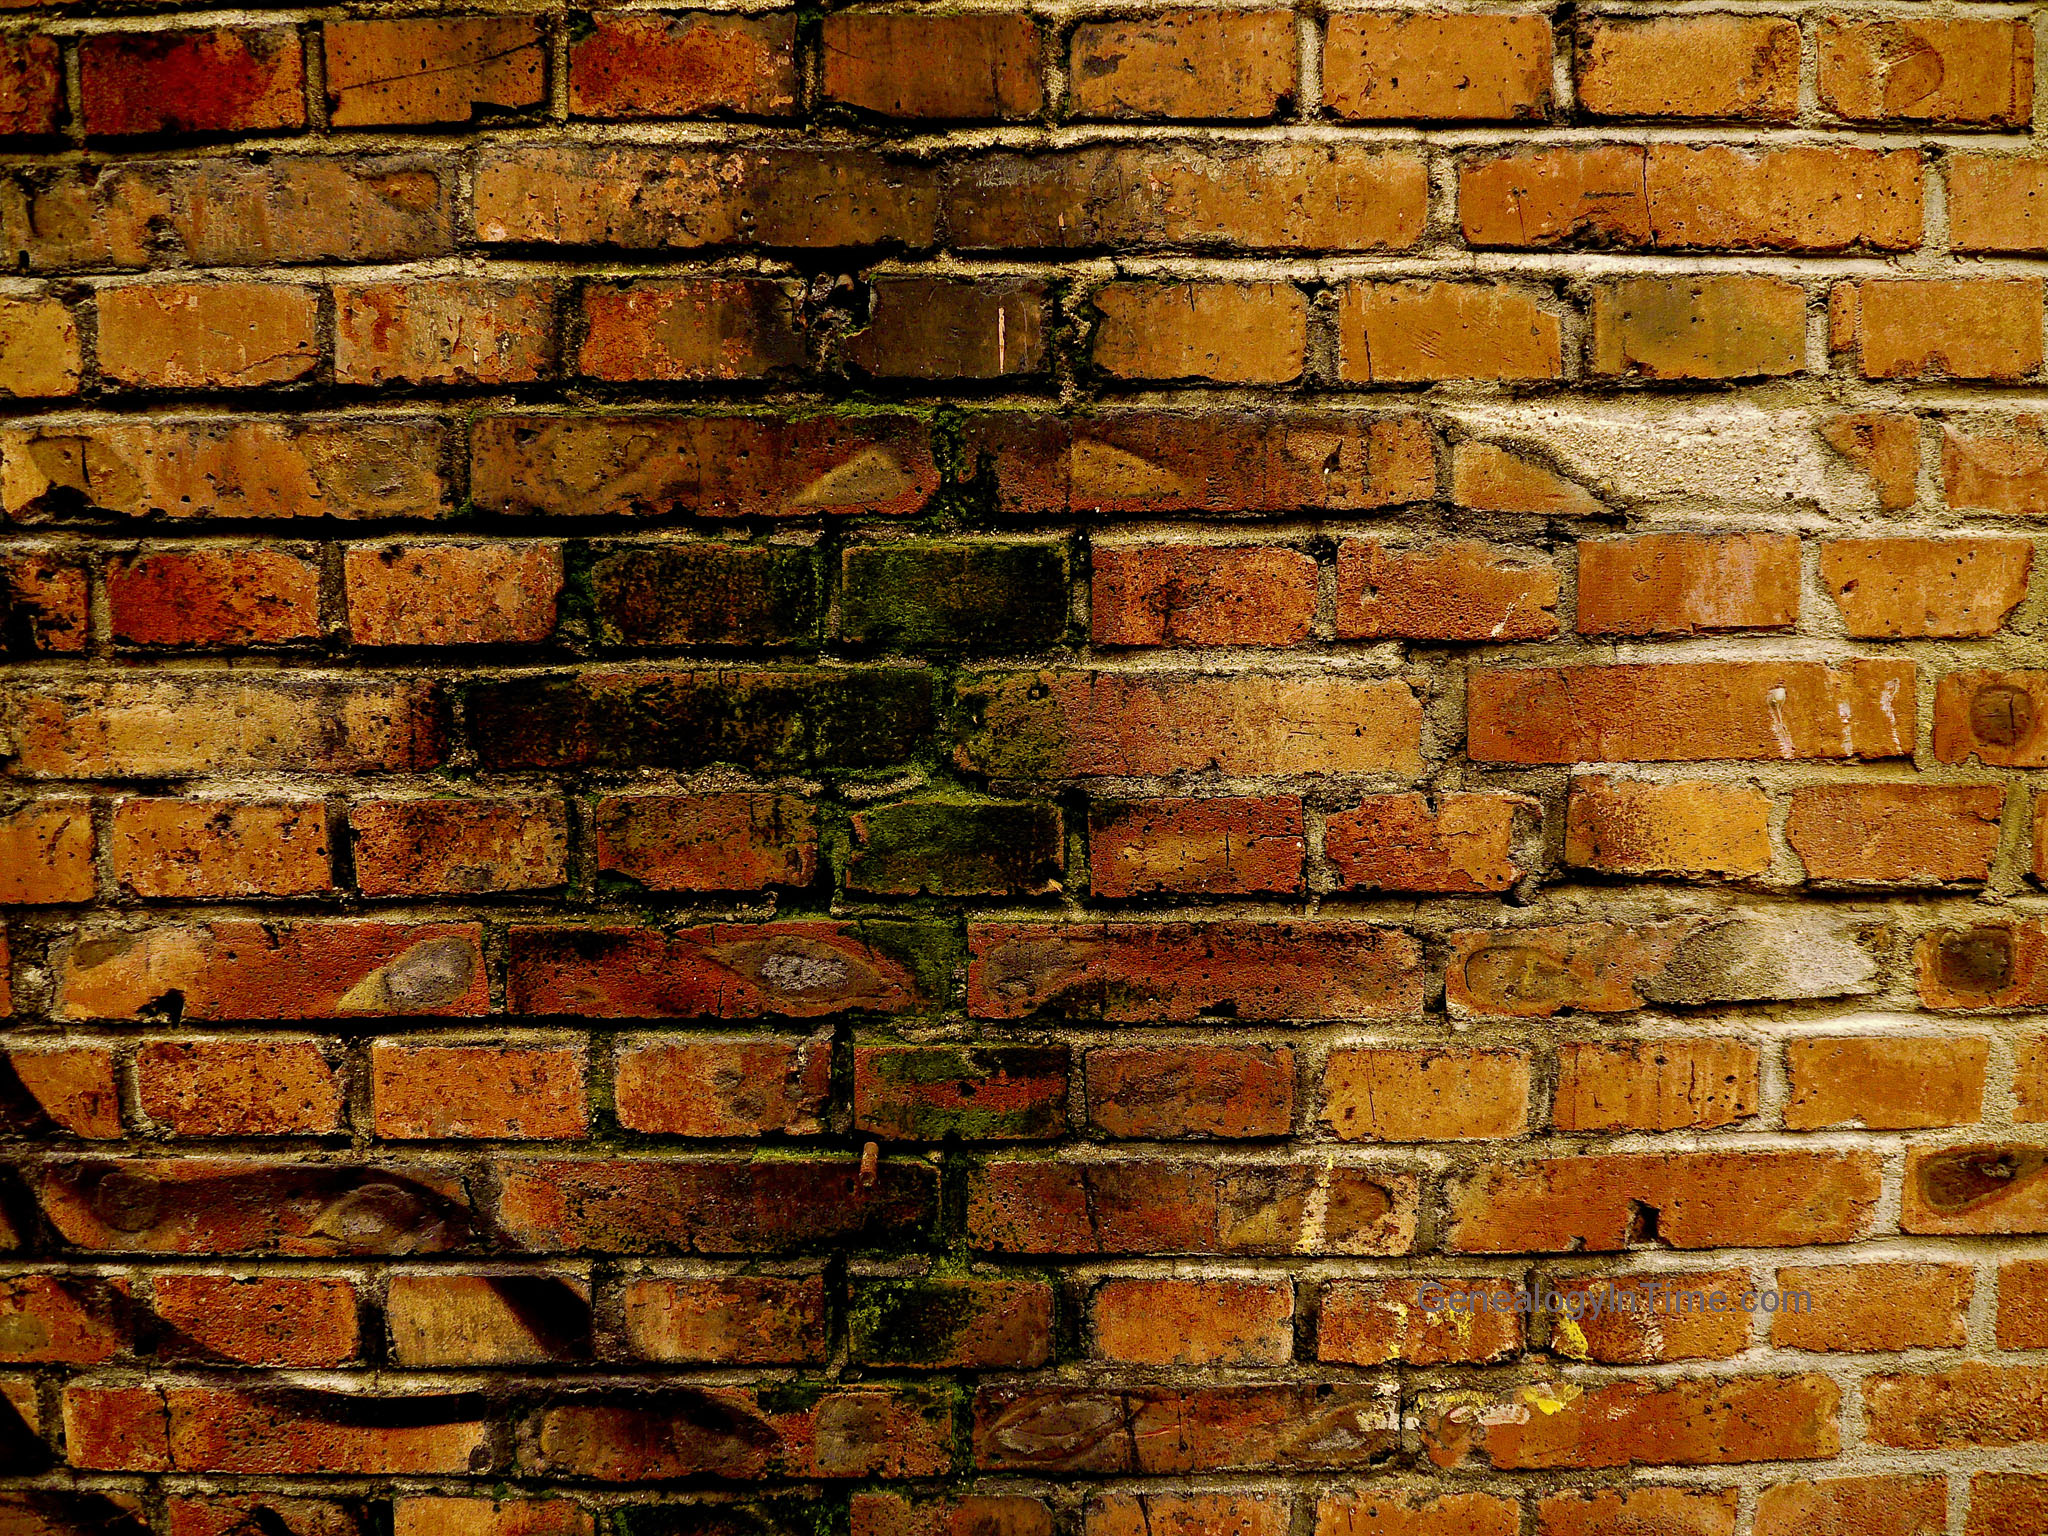 How To Add Brick To A Wall Free Brick Wall Images Page 5